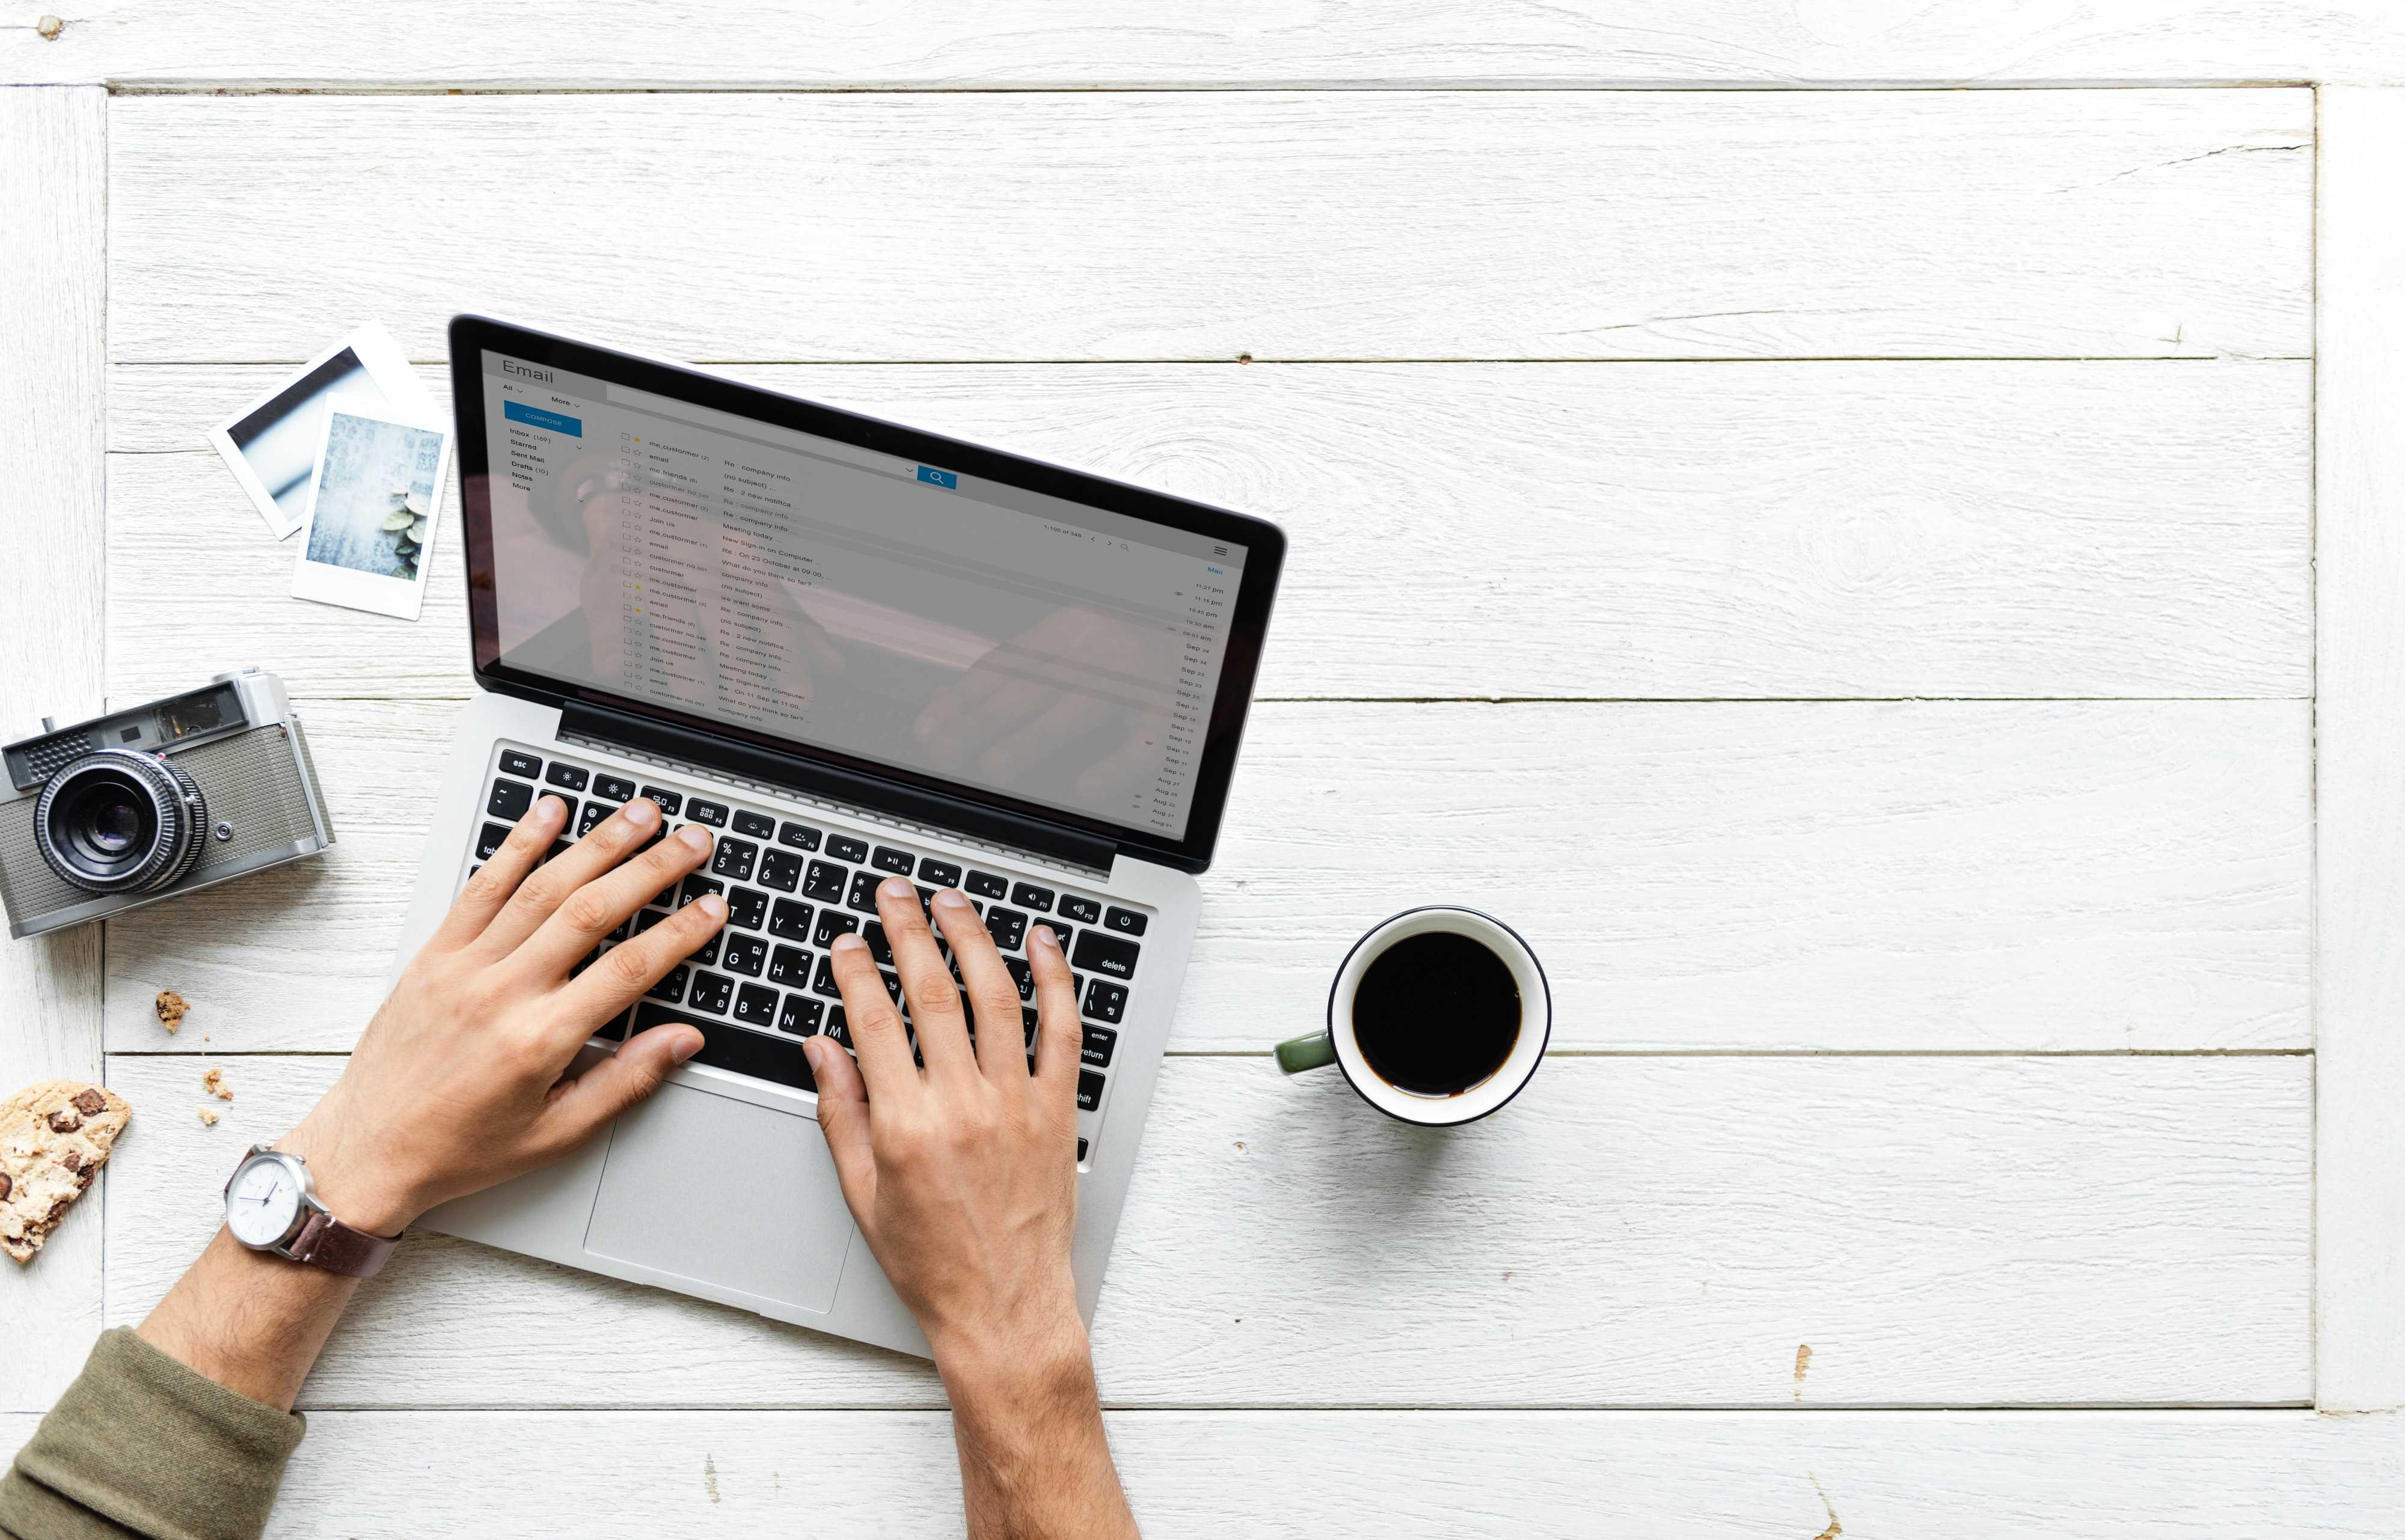 Digital nomad working on a laptop with coffee